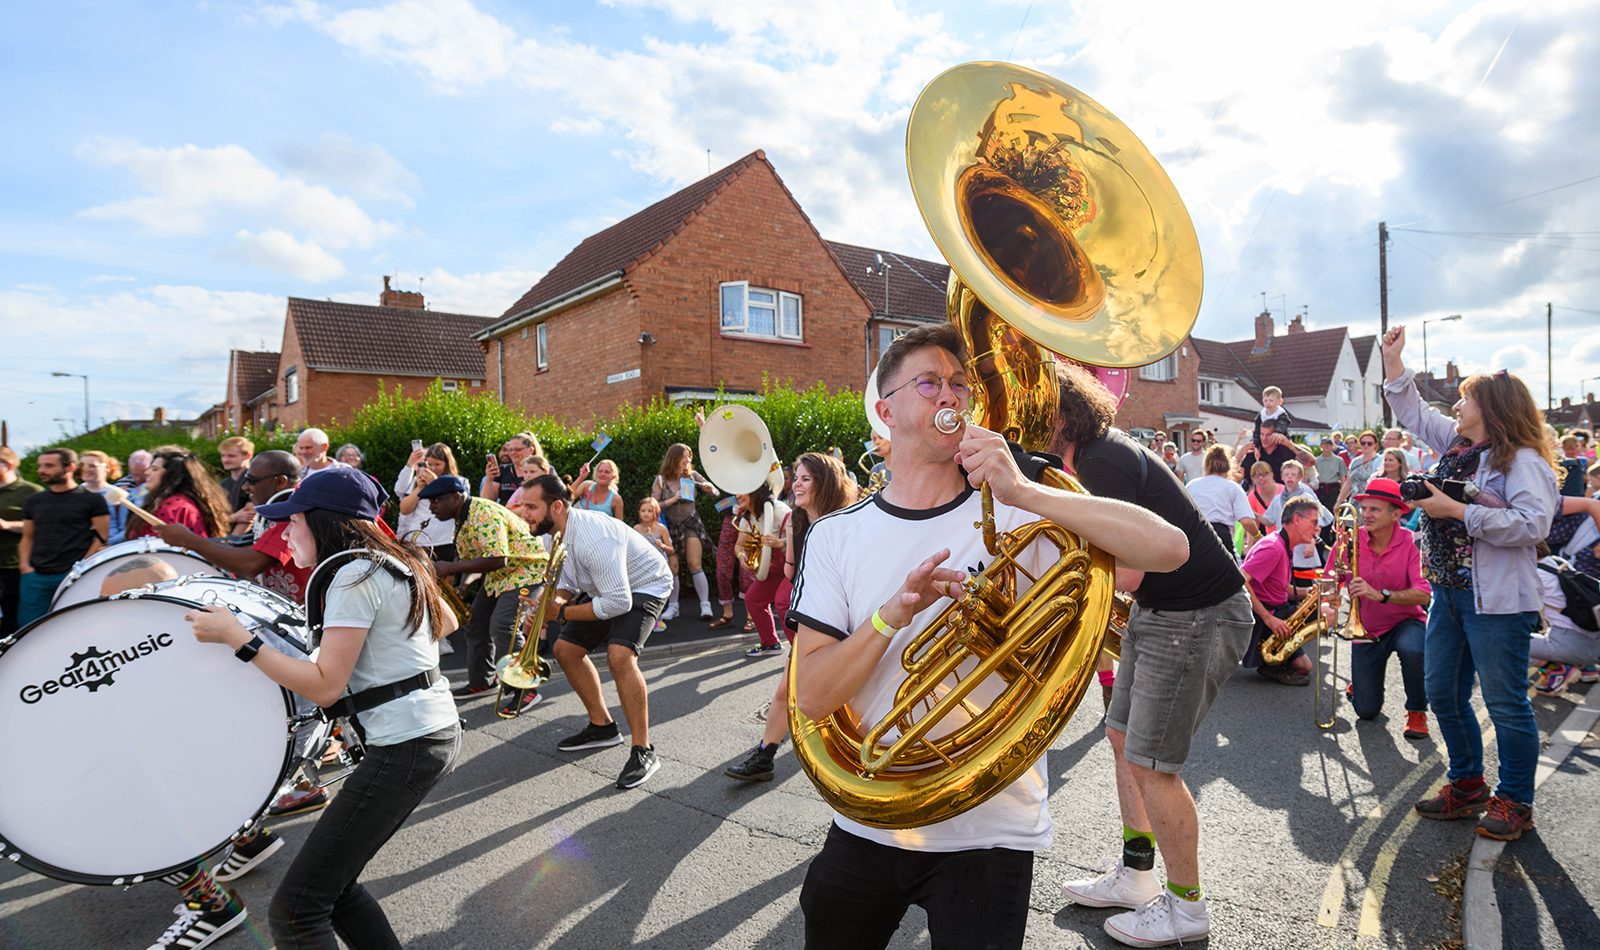 A crowd of people, musicians, a white male plays sousaphone